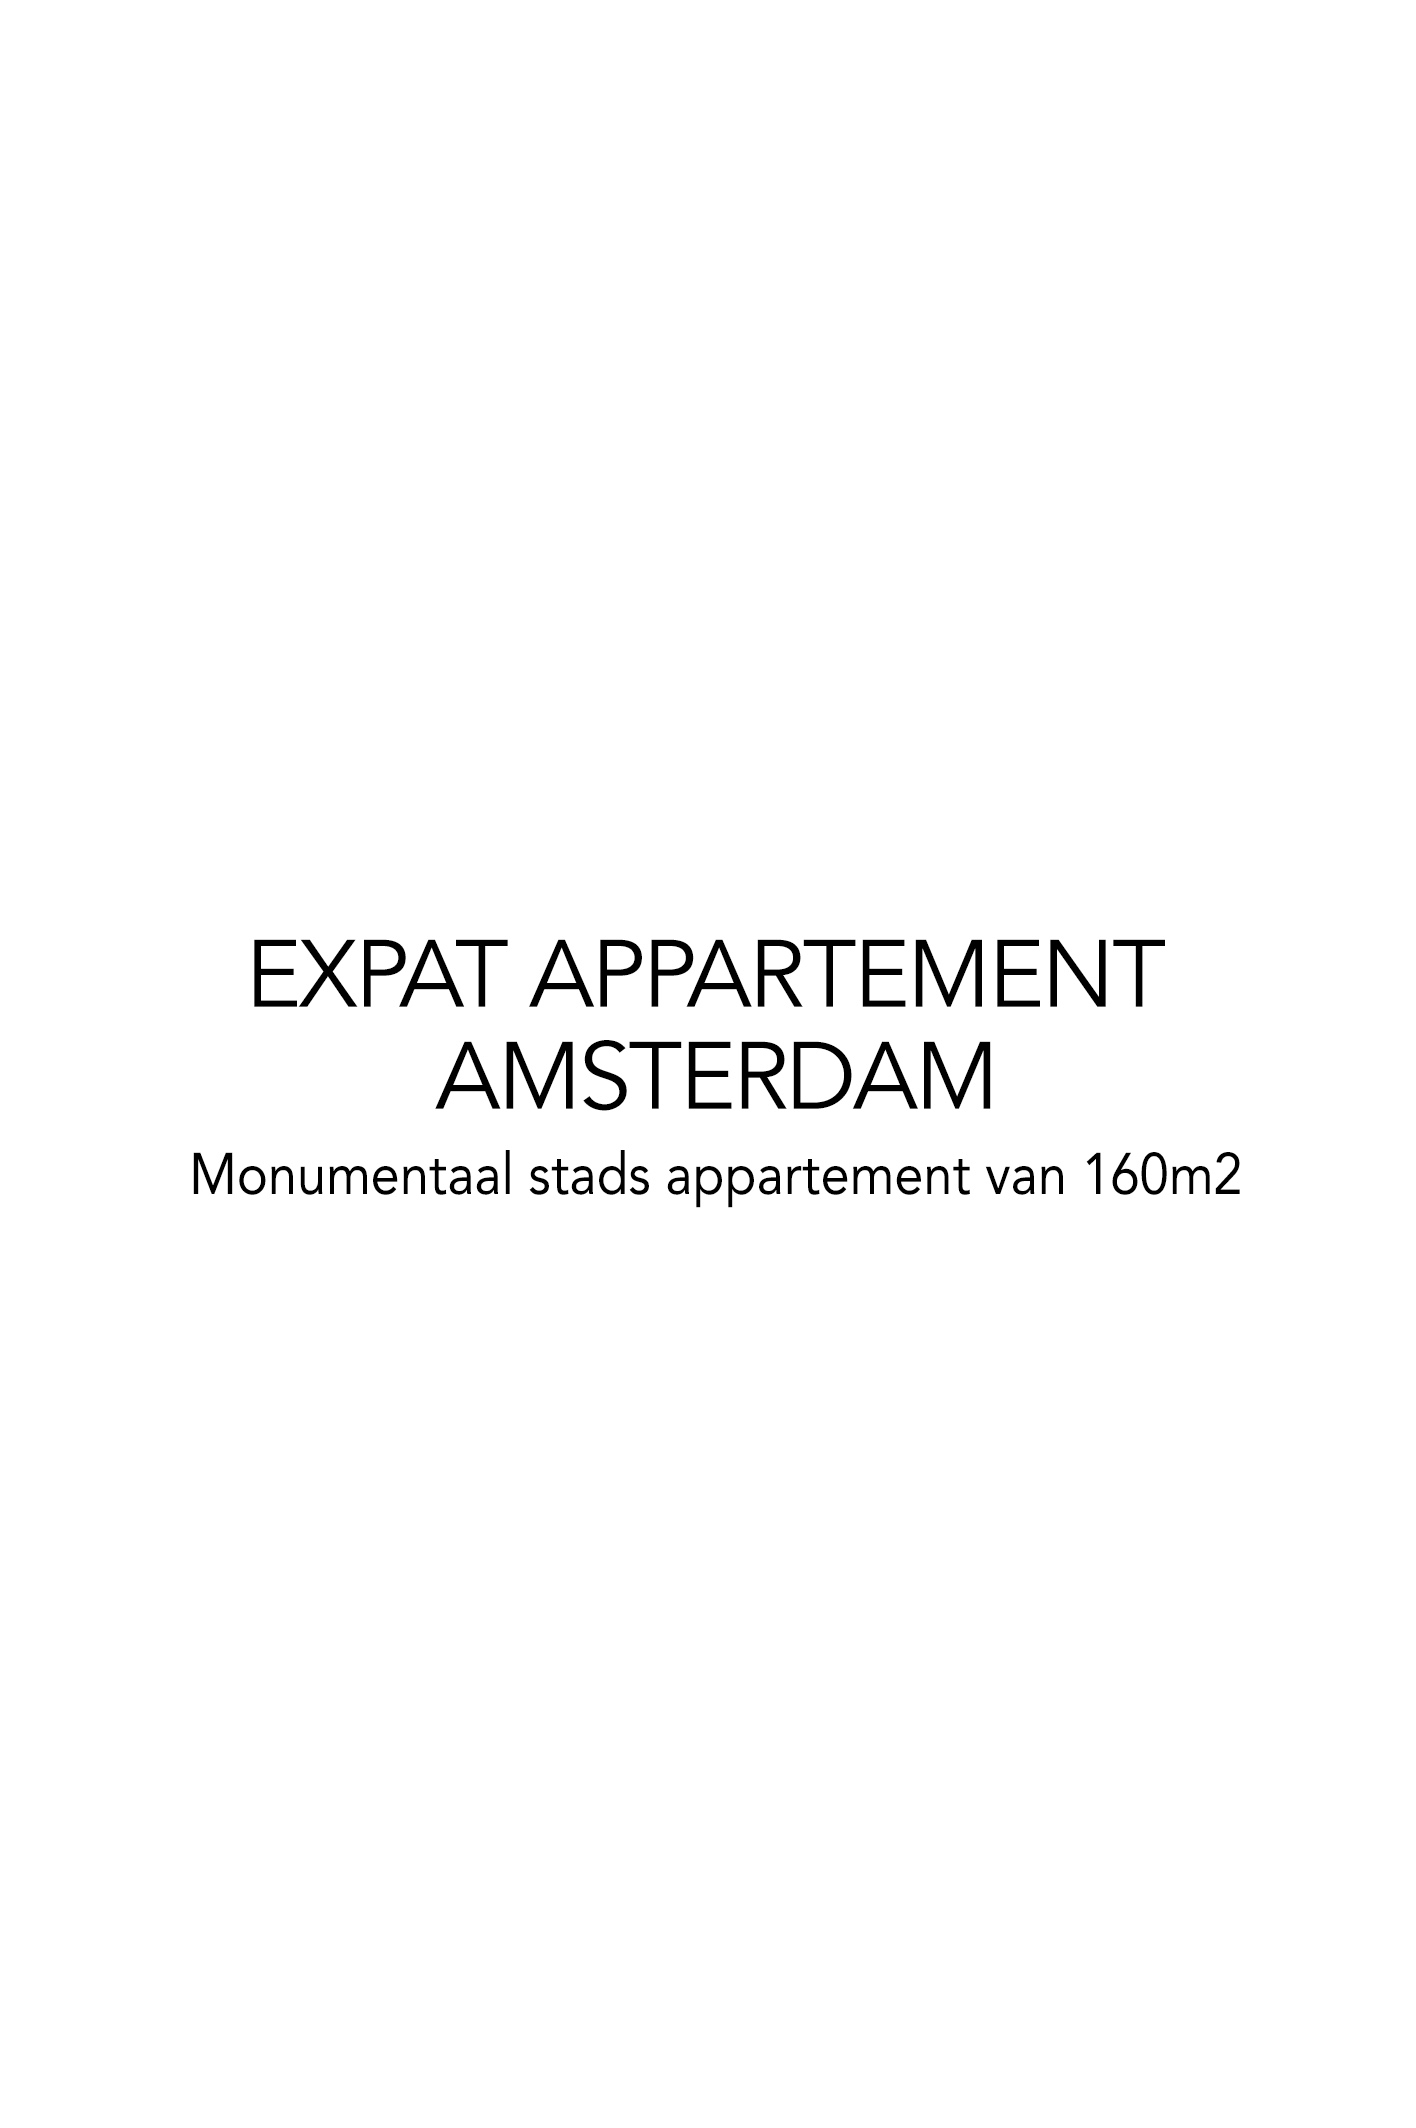 EXPAT APPARTEMENT AMSTERDAM